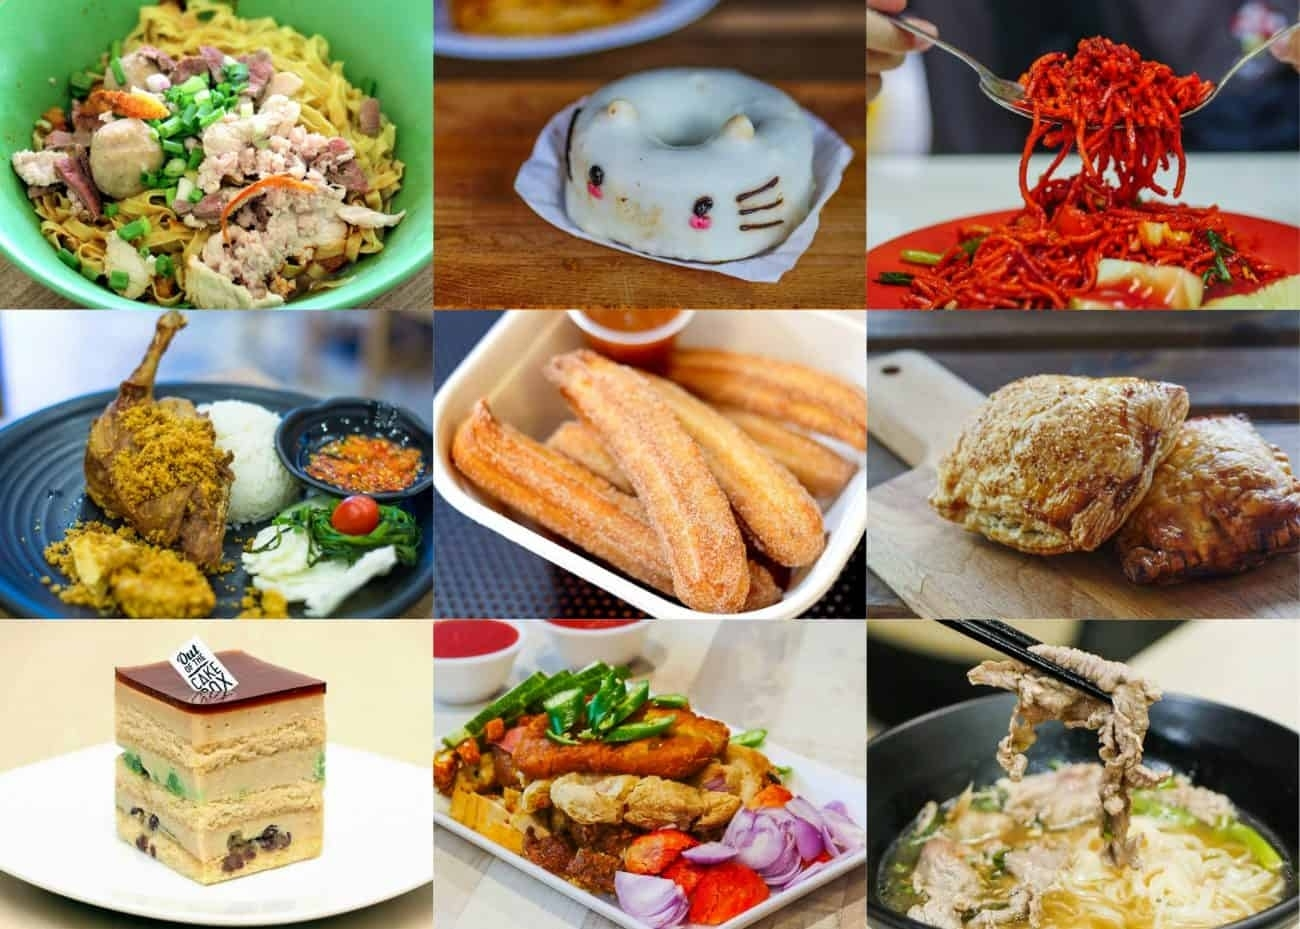 14 Eateries That'll Have You Eating Like A Basic Tampines Heartlander with Garden House Halal Chinese Restaurant